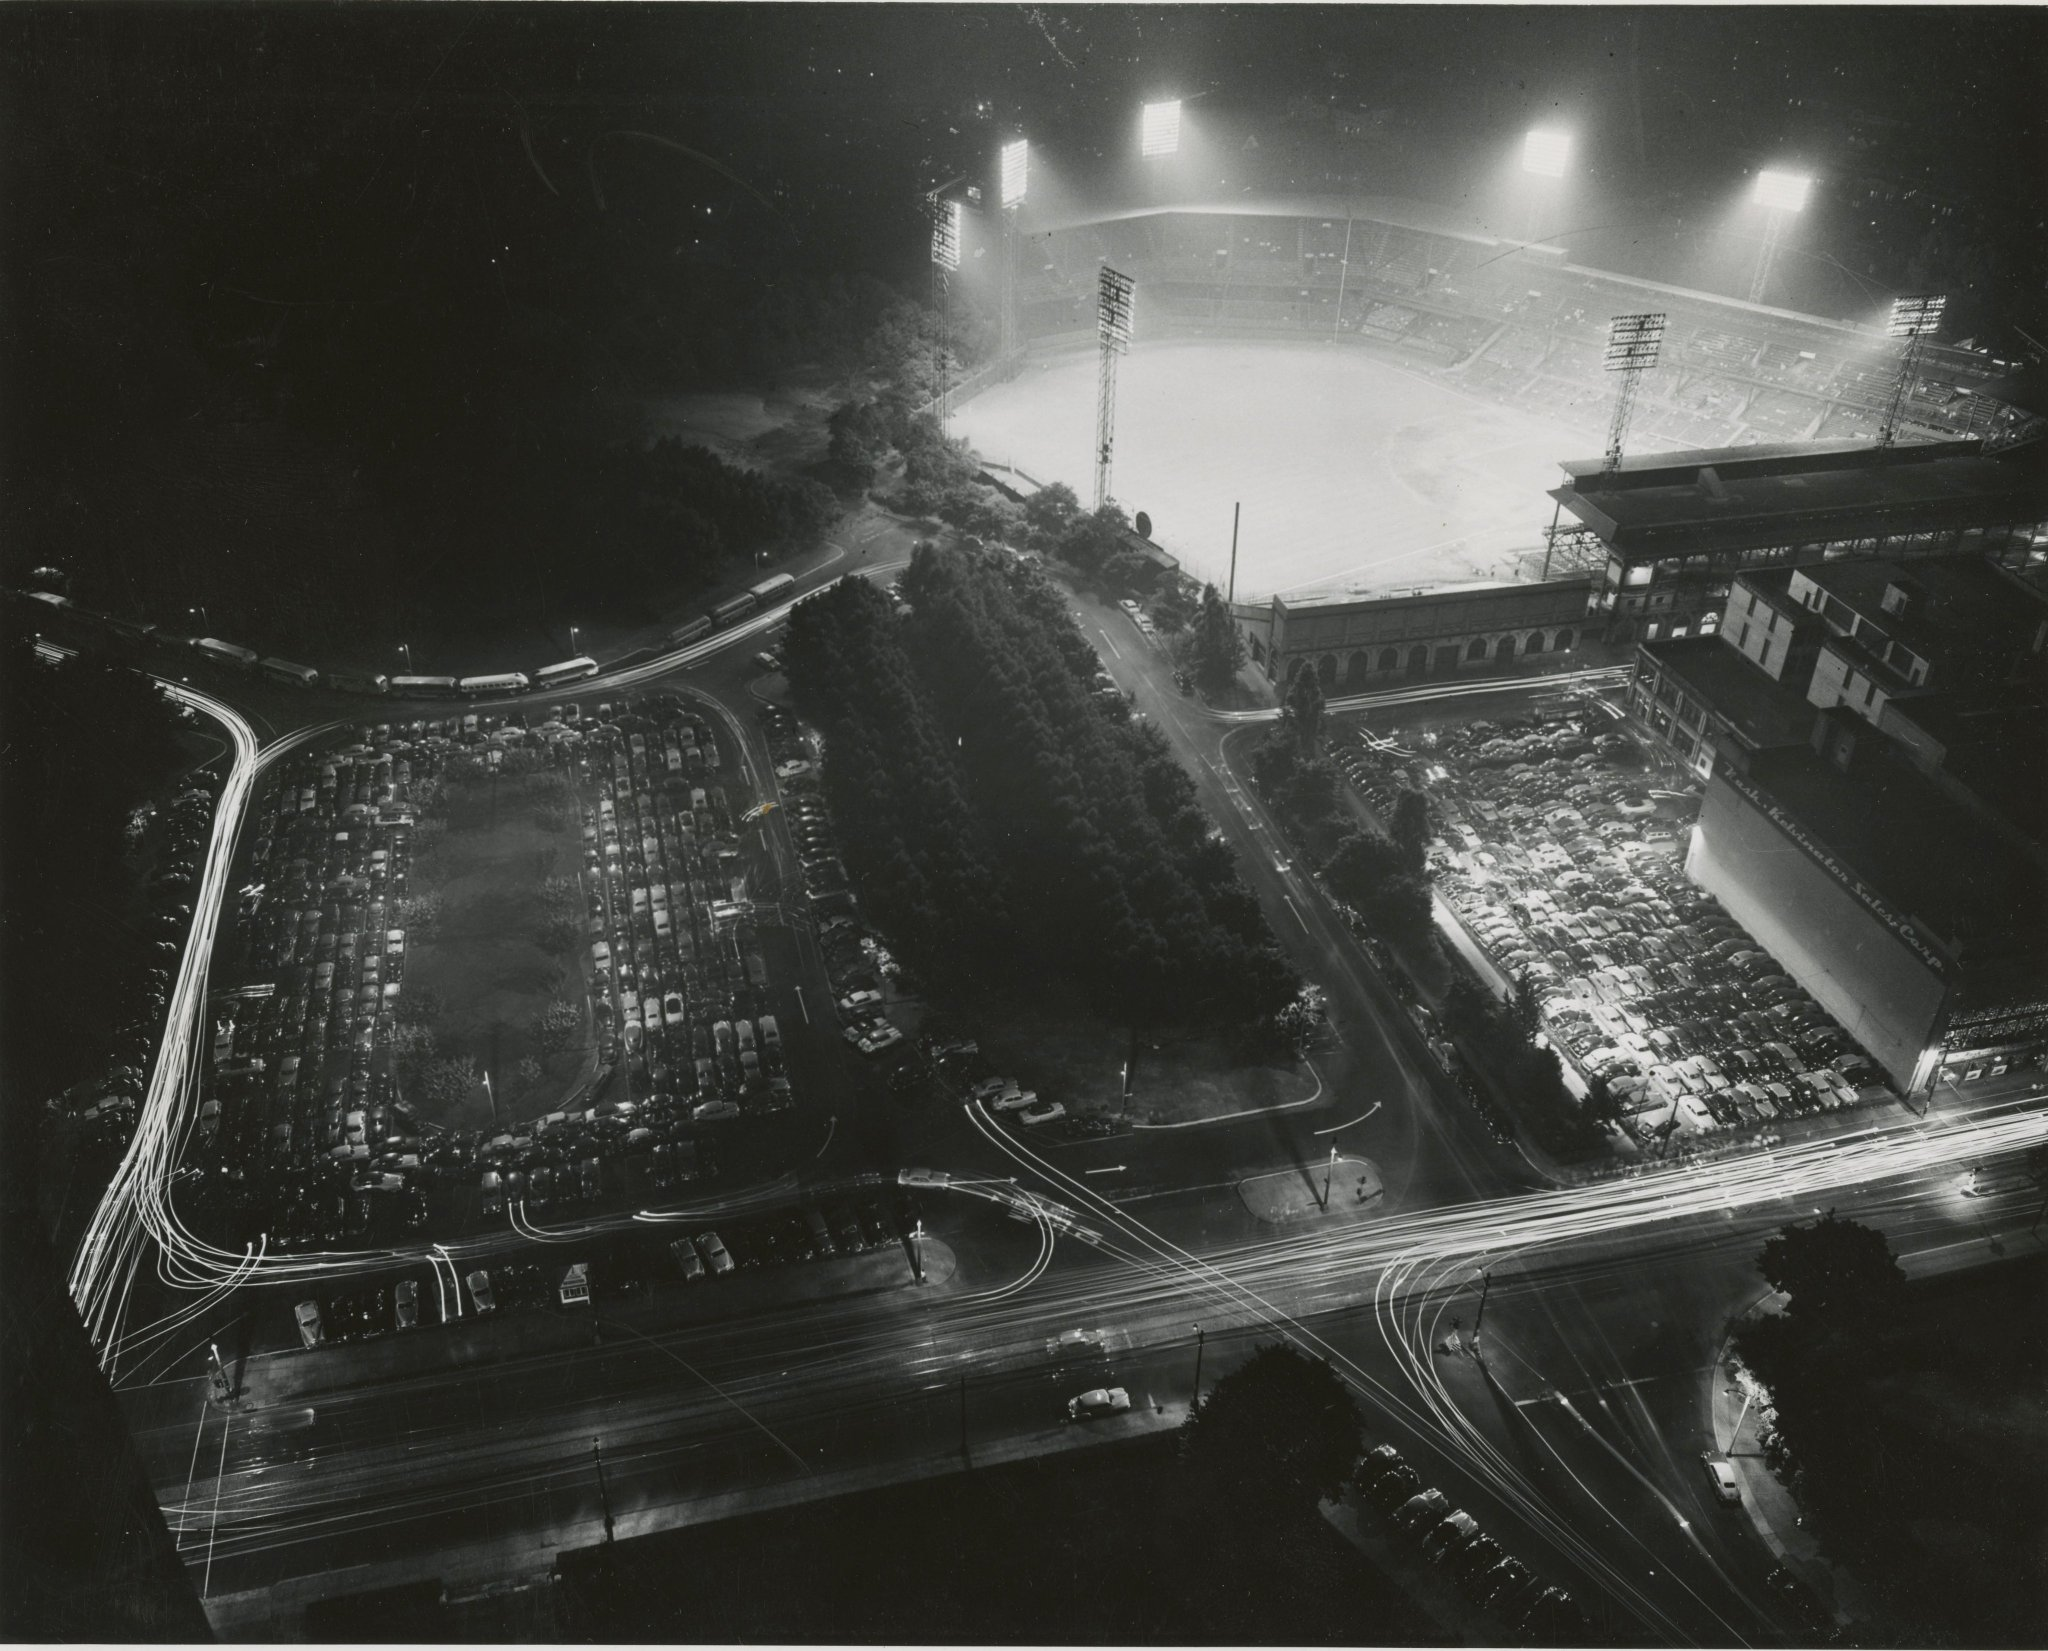 #OTD in 1946, it was first time on MLB calendar that all games were played at night (Friday), eight in total:  Forbes Field (seen here in 1949) Braves Field  Comiskey Park Yankee Stadium Crosley Field Sportsman's Park (for a Browns game, not Cardinals) Griffith Stadium Shibe Park https://t.co/uWQBQlfM1p